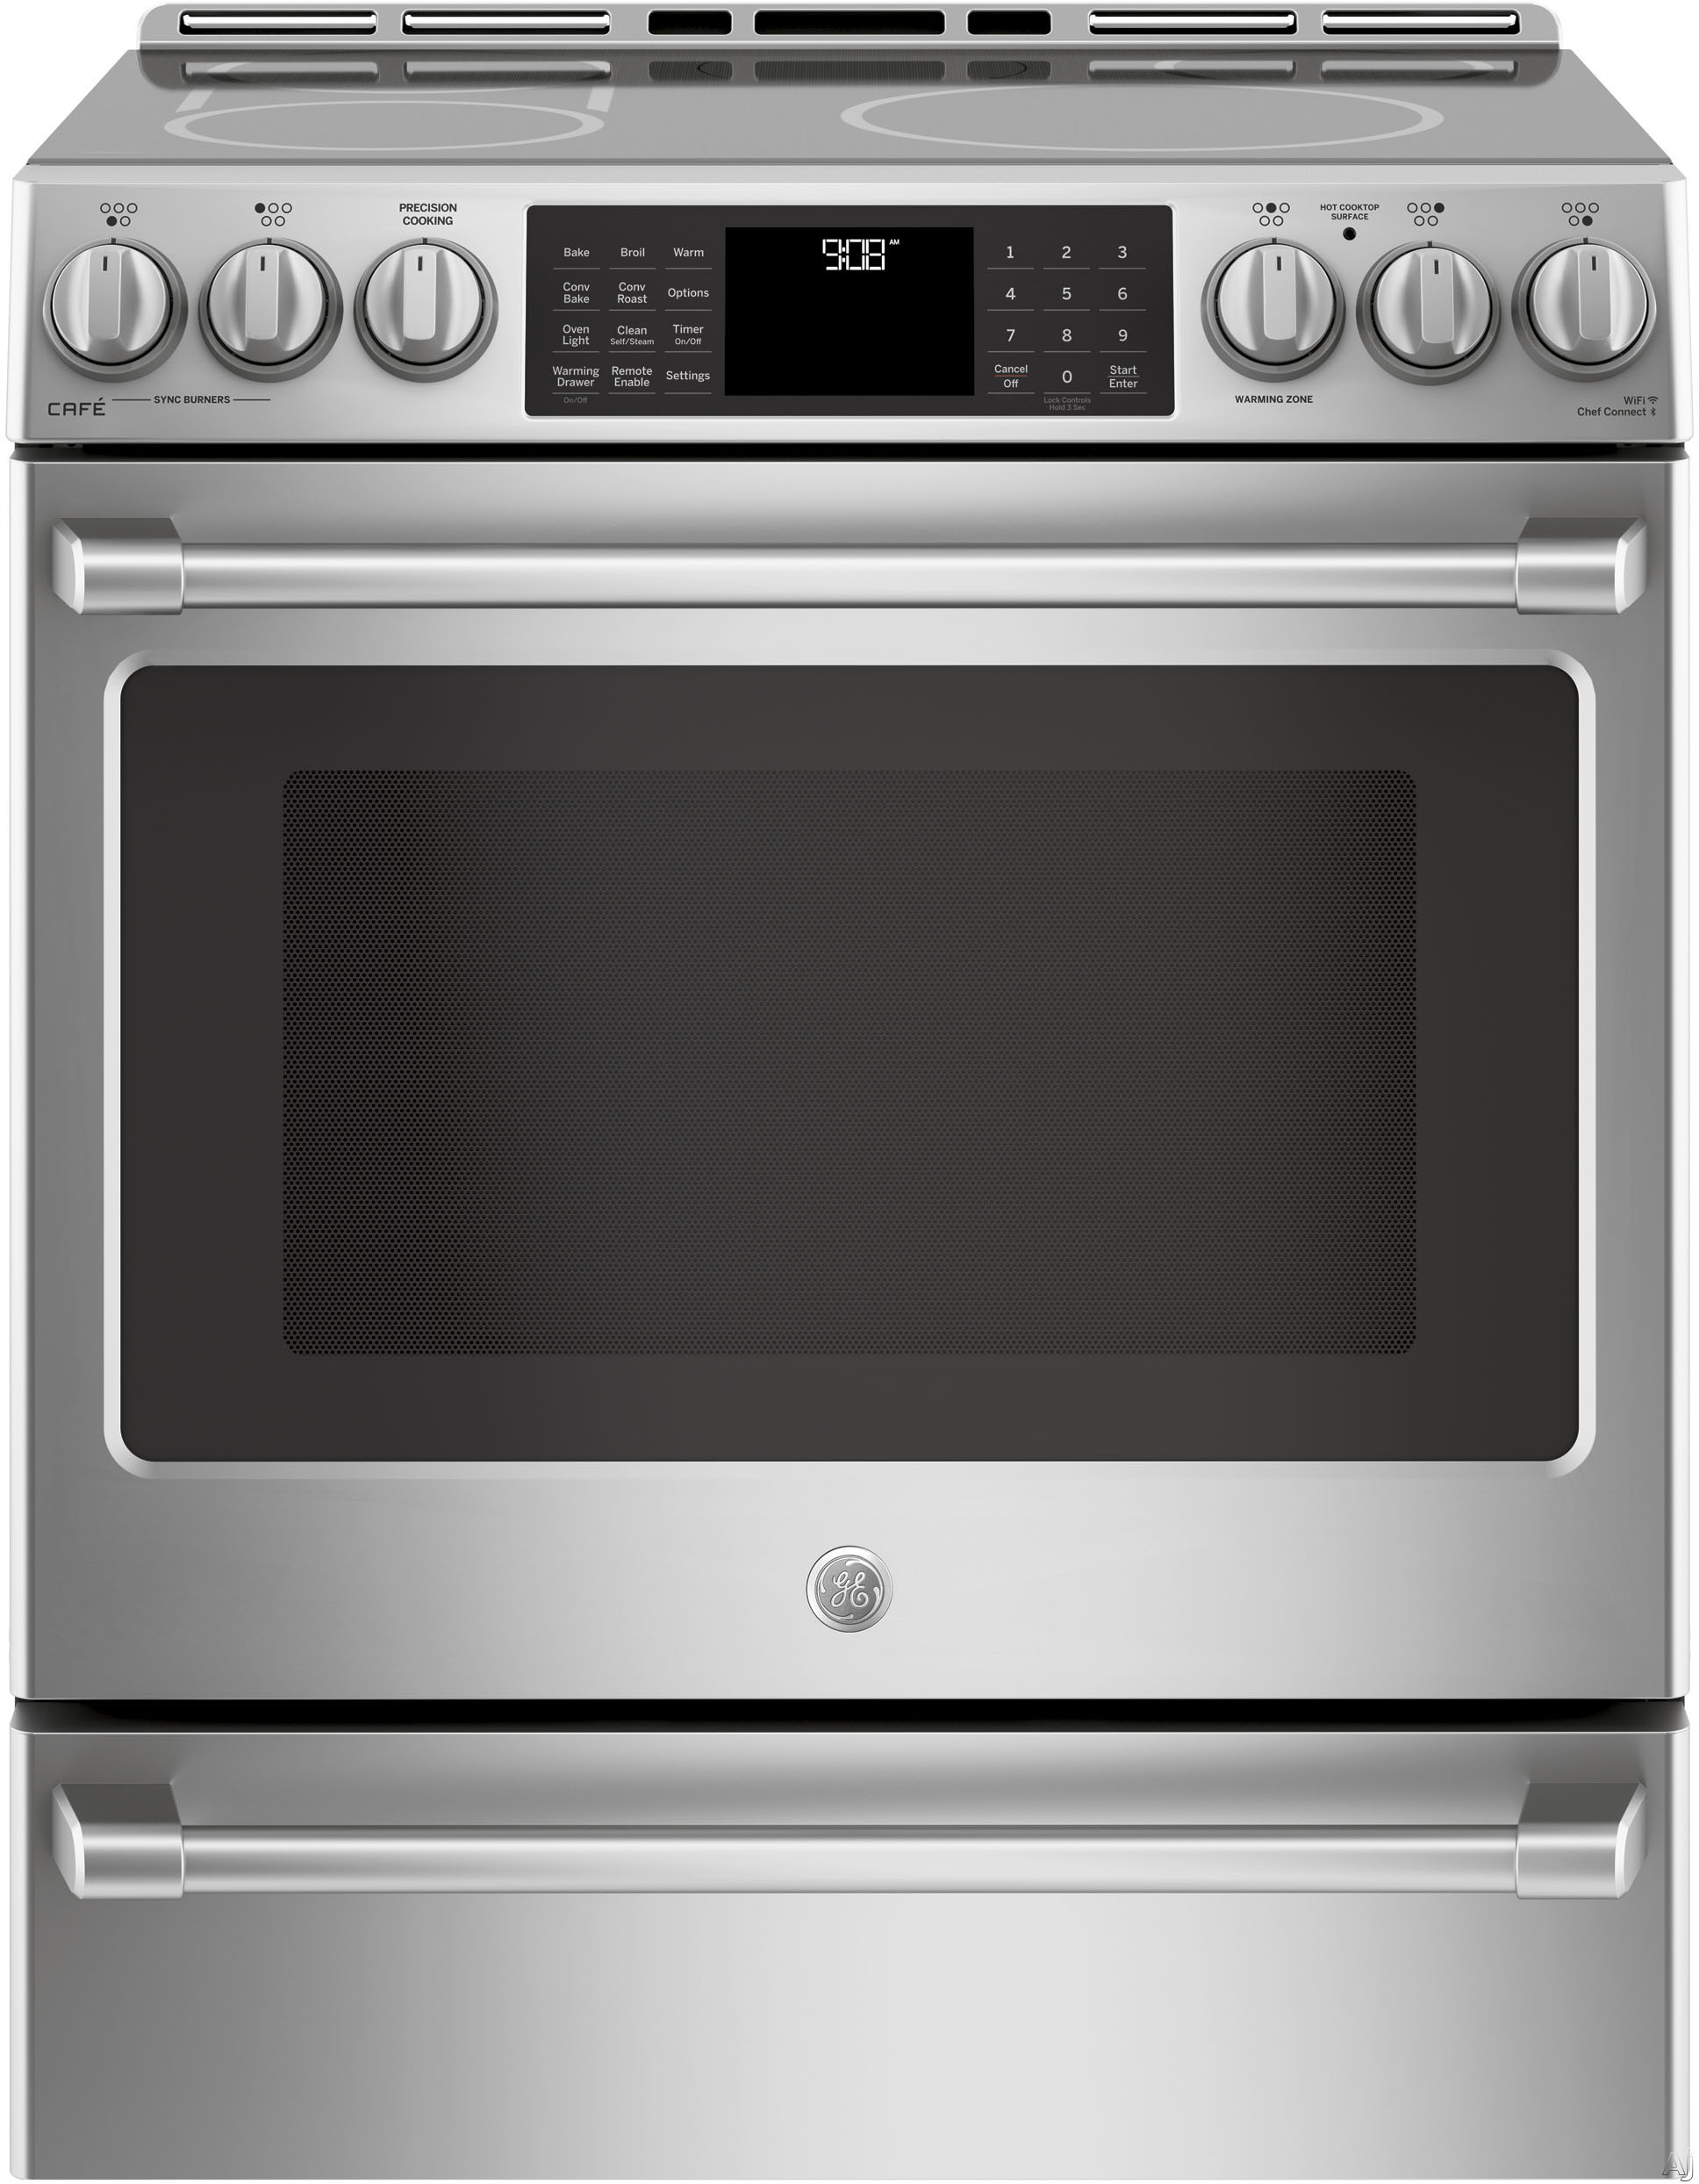 GE Cafe Series CHS985SELSS 30 Inch Slide-In Induction Electric Range with WiFi Connect, True Convection, Chef Connect, Precision Cooking Probe, Warming Drawer, Steam Clean, LED Backlit Knobs, 5 Heatin